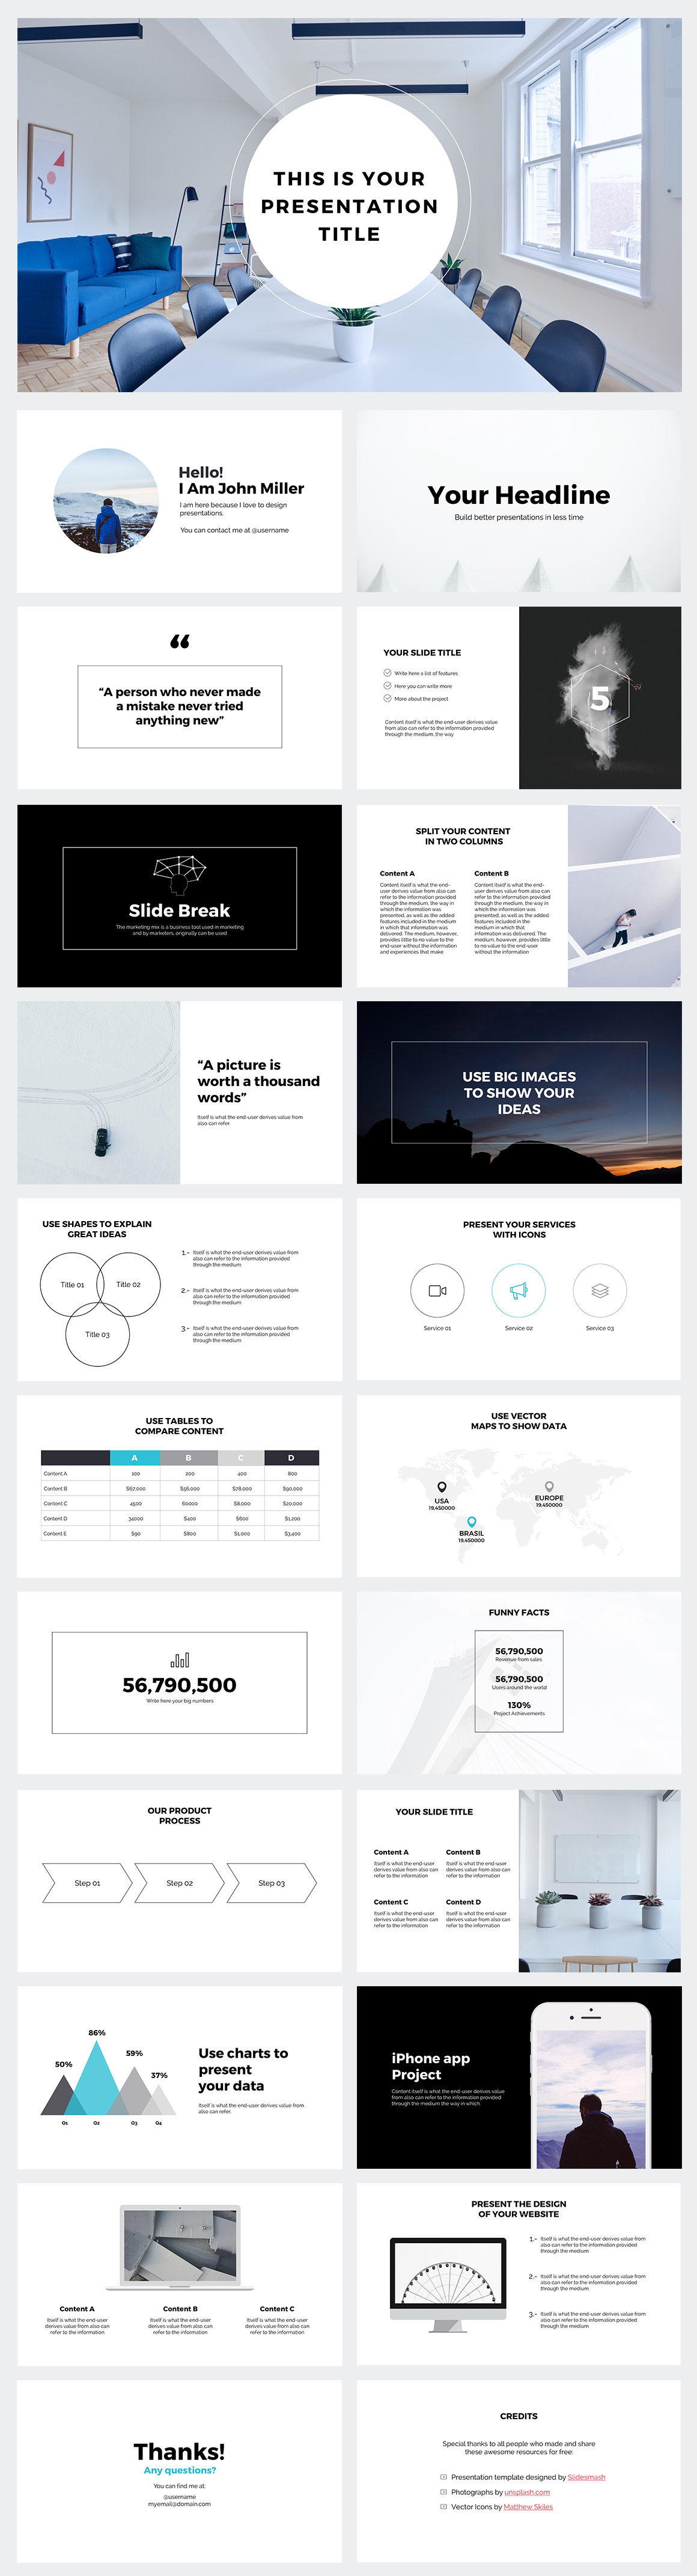 Free business strategy powerpoint template on behance download this free business strategy powerpoint template to use in your project all elements on this template are fully editable so you can customize your cheaphphosting Images